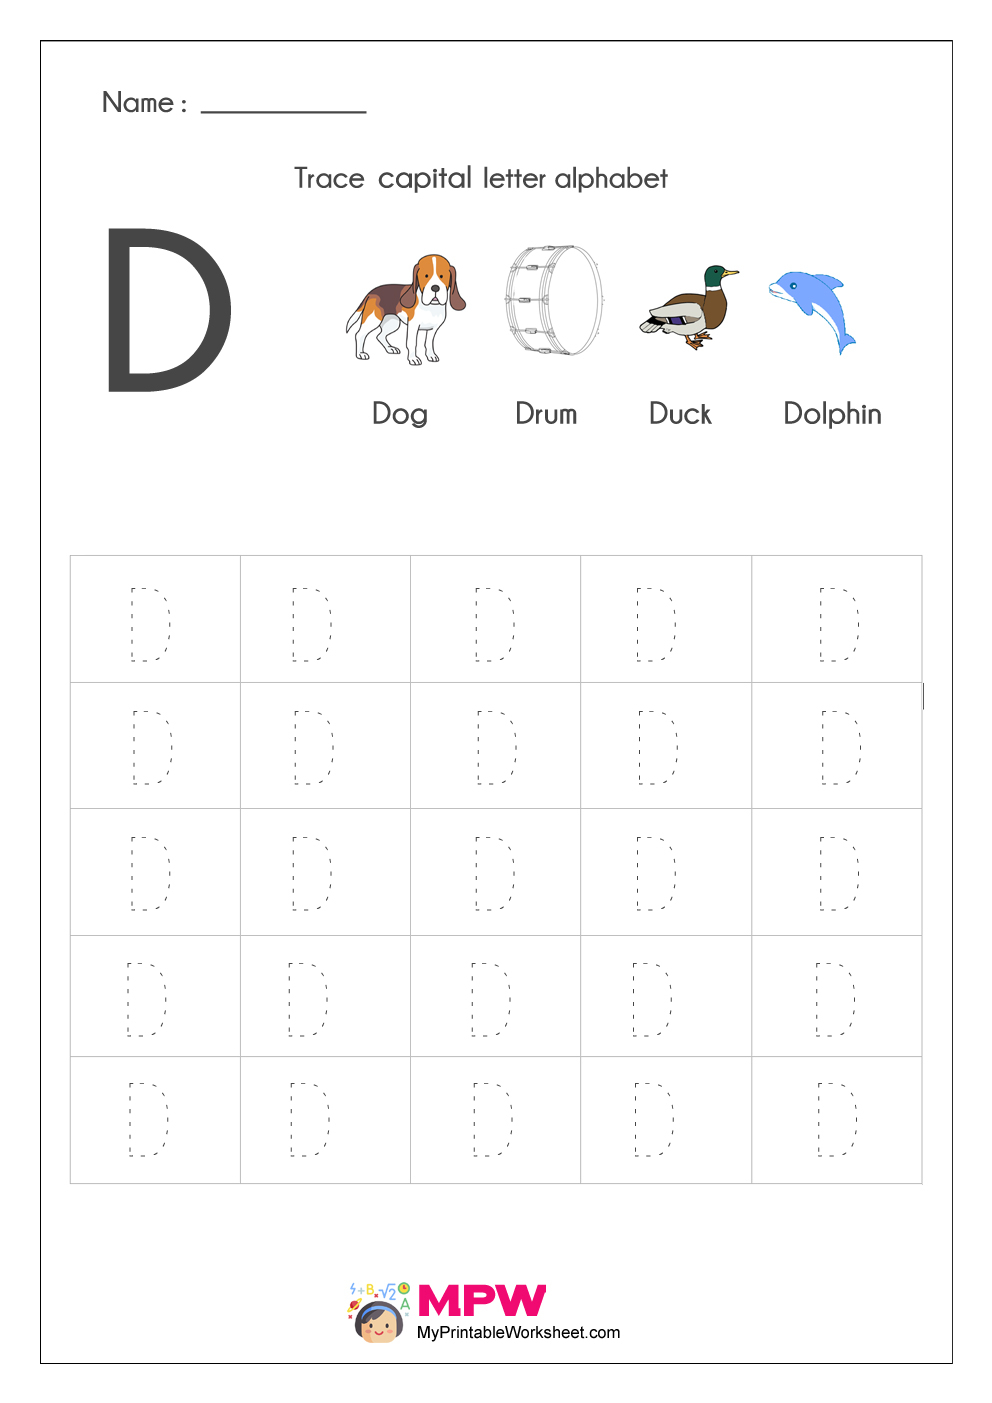 Alphabet Tracing Worksheets, Printable English Capital pertaining to Letter Tracing D